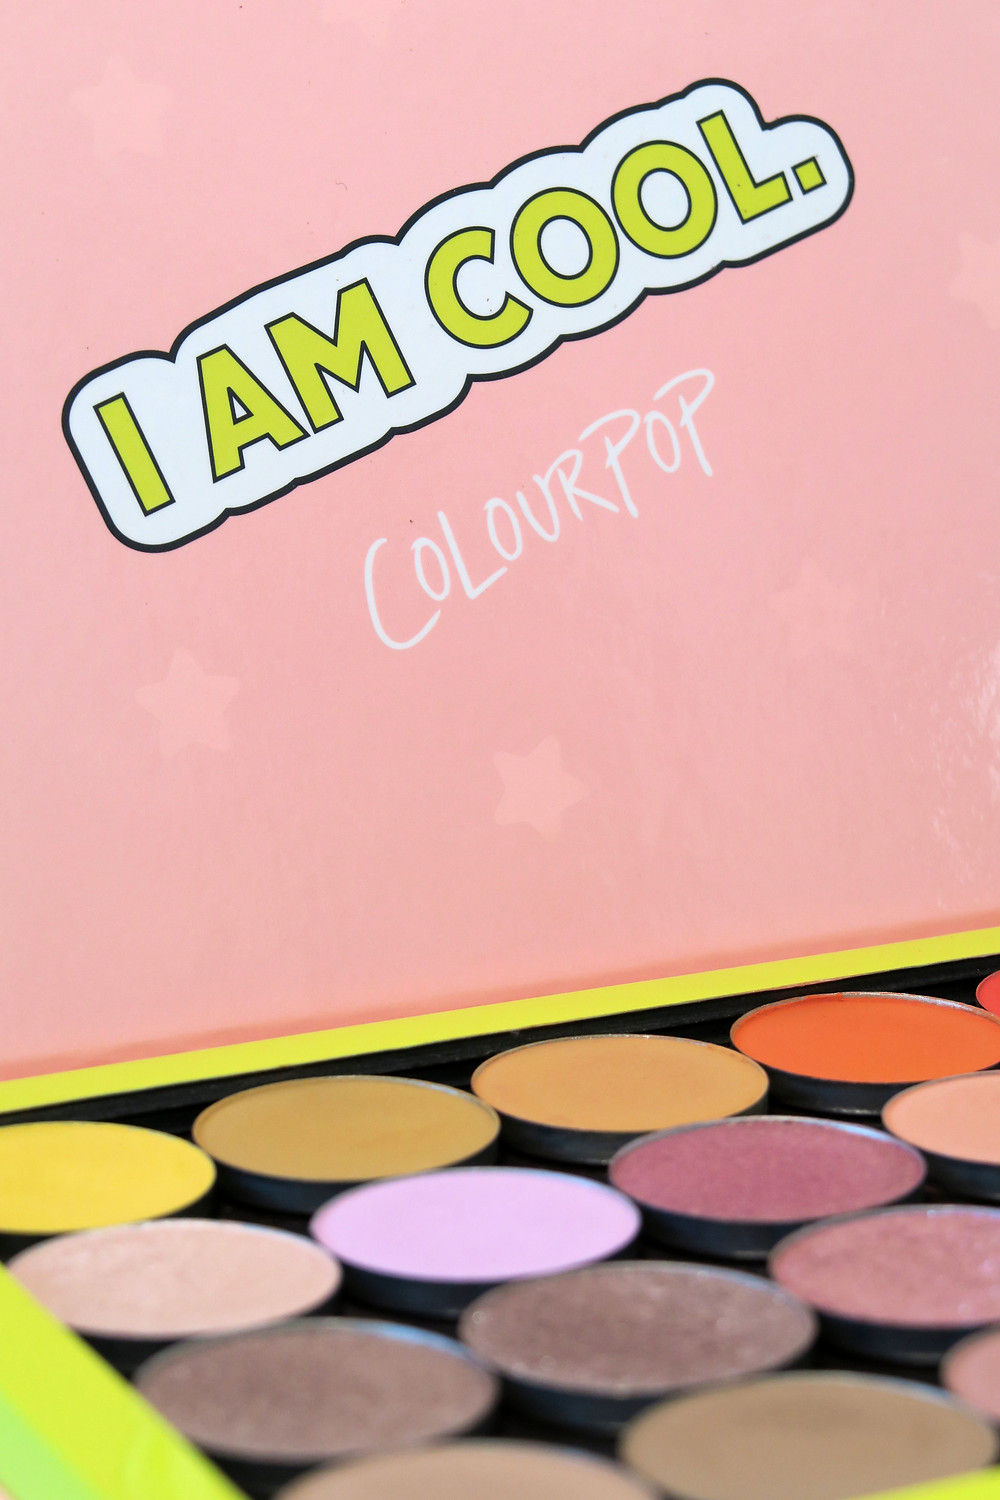 colourpop pressed powder shadow review